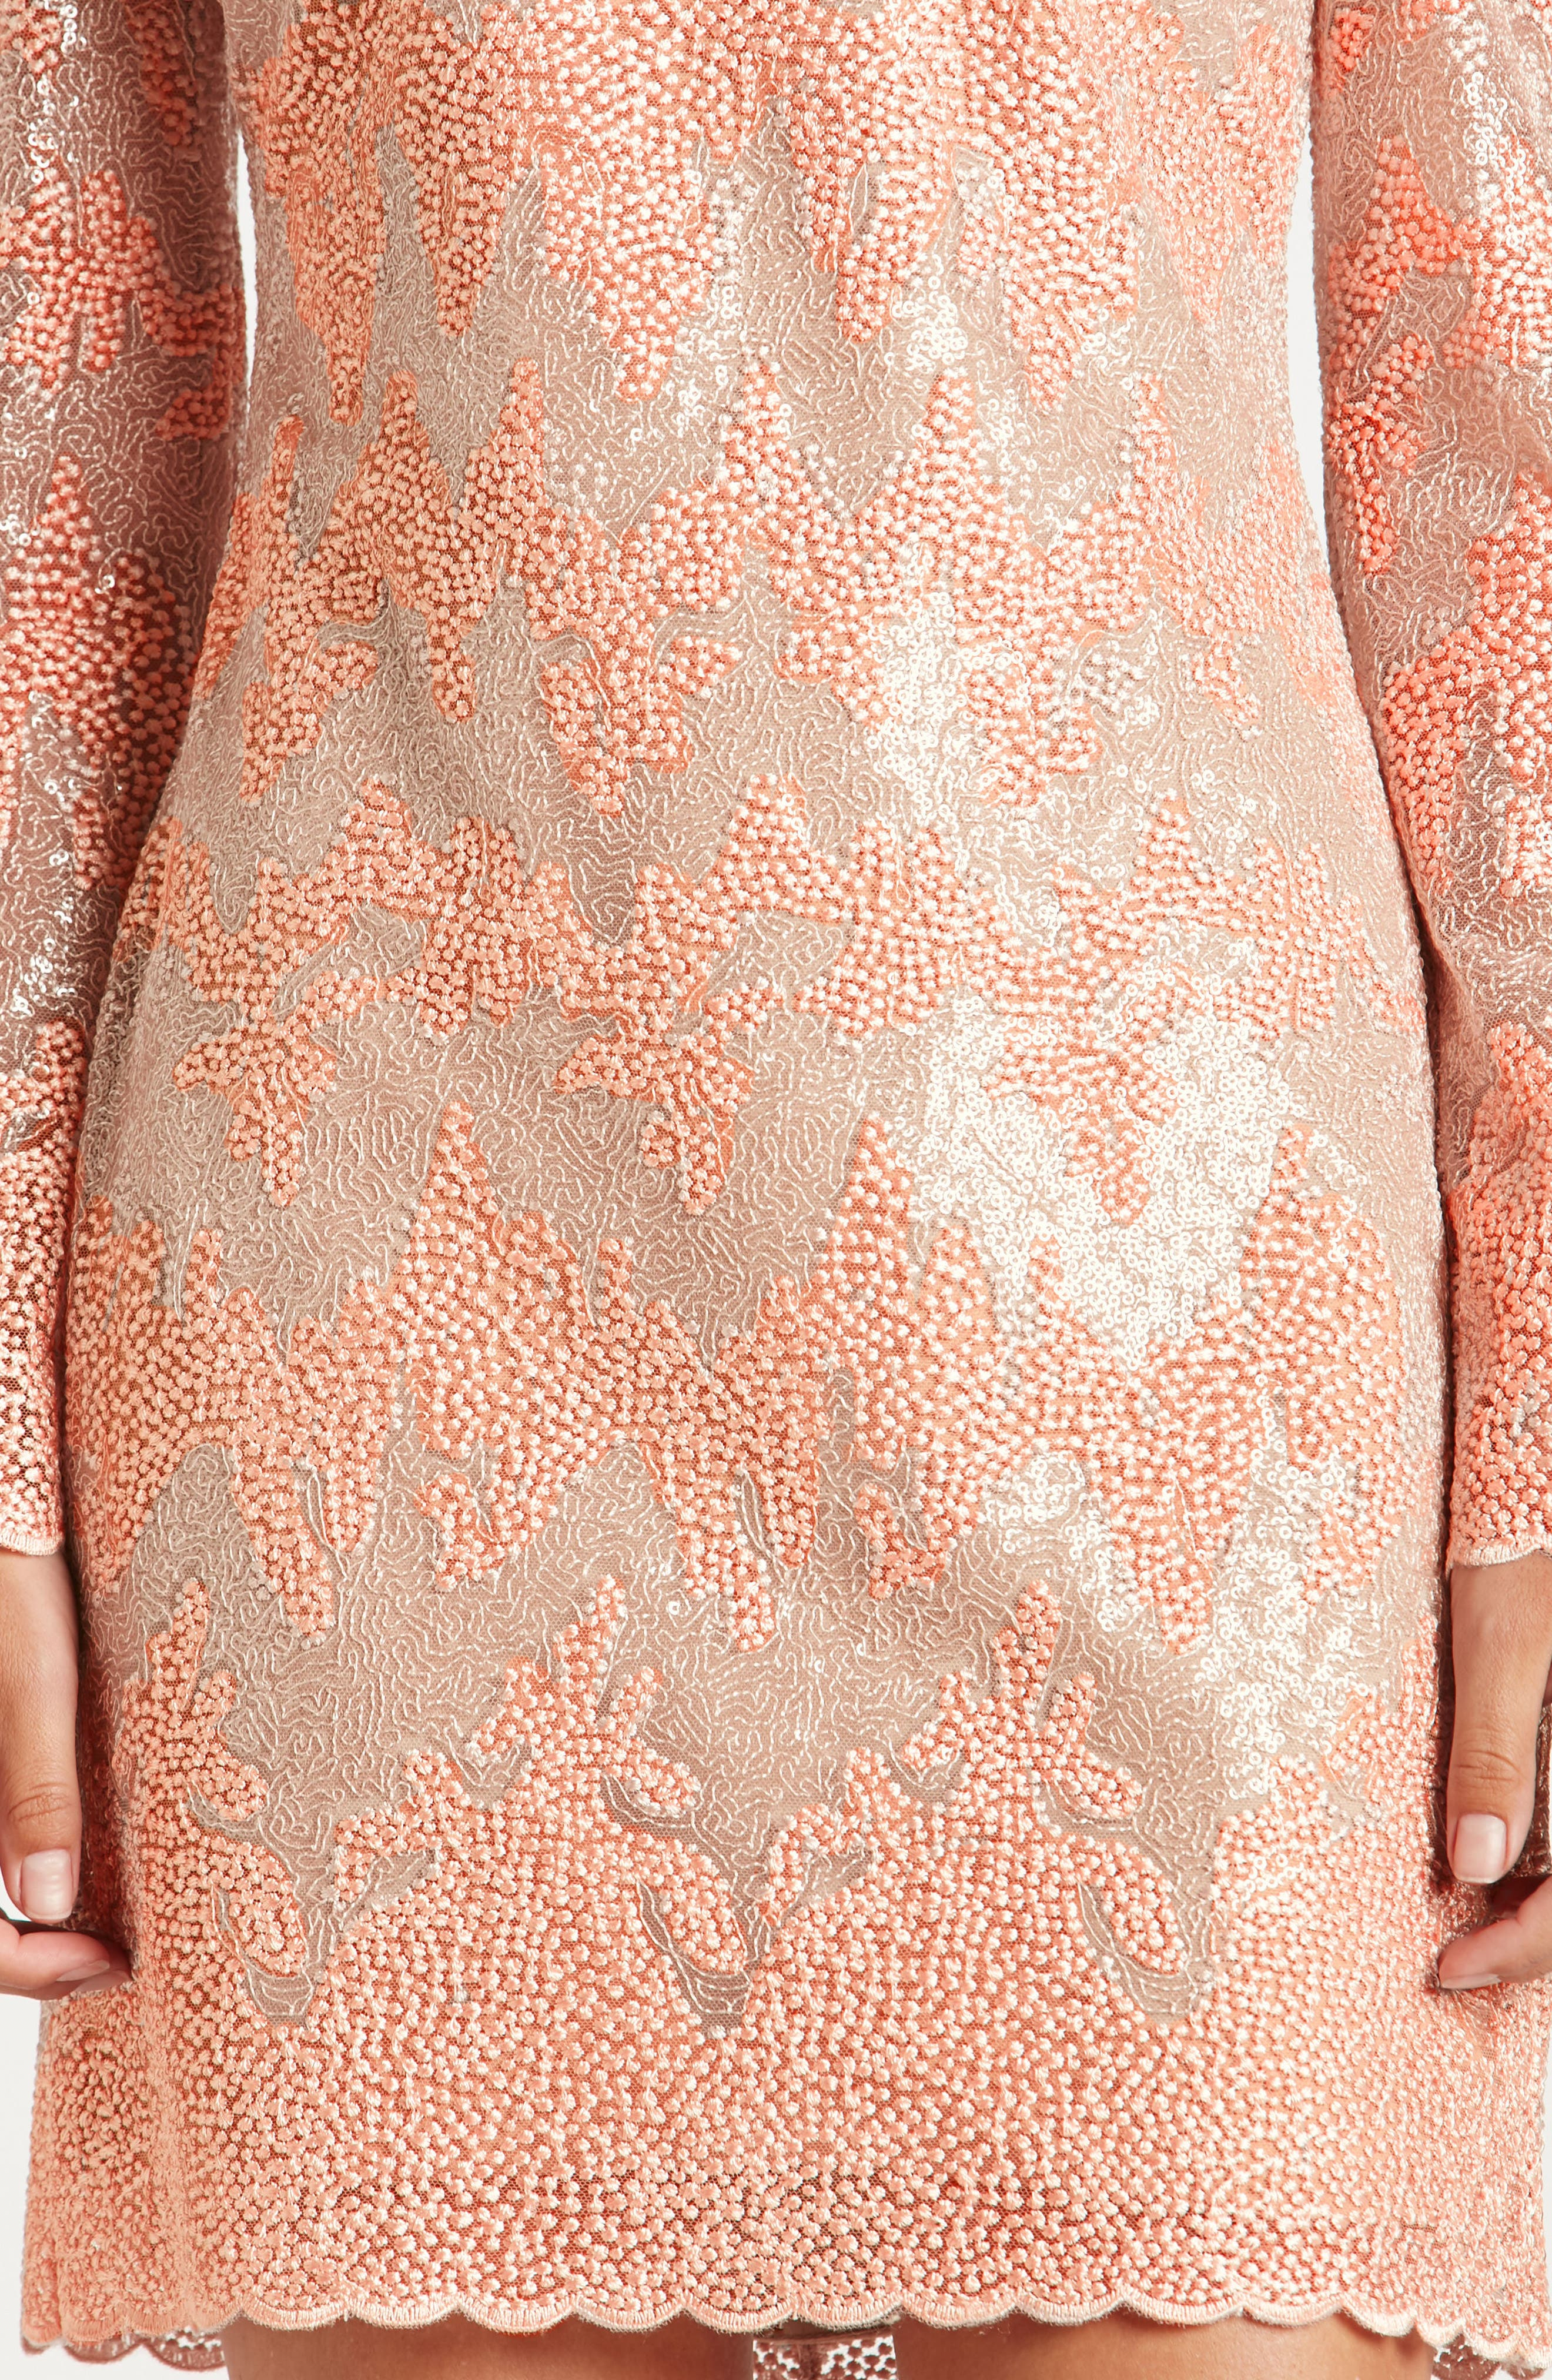 Aubry Sequin Embellished Shift Dress,                             Alternate thumbnail 4, color,                             Blush